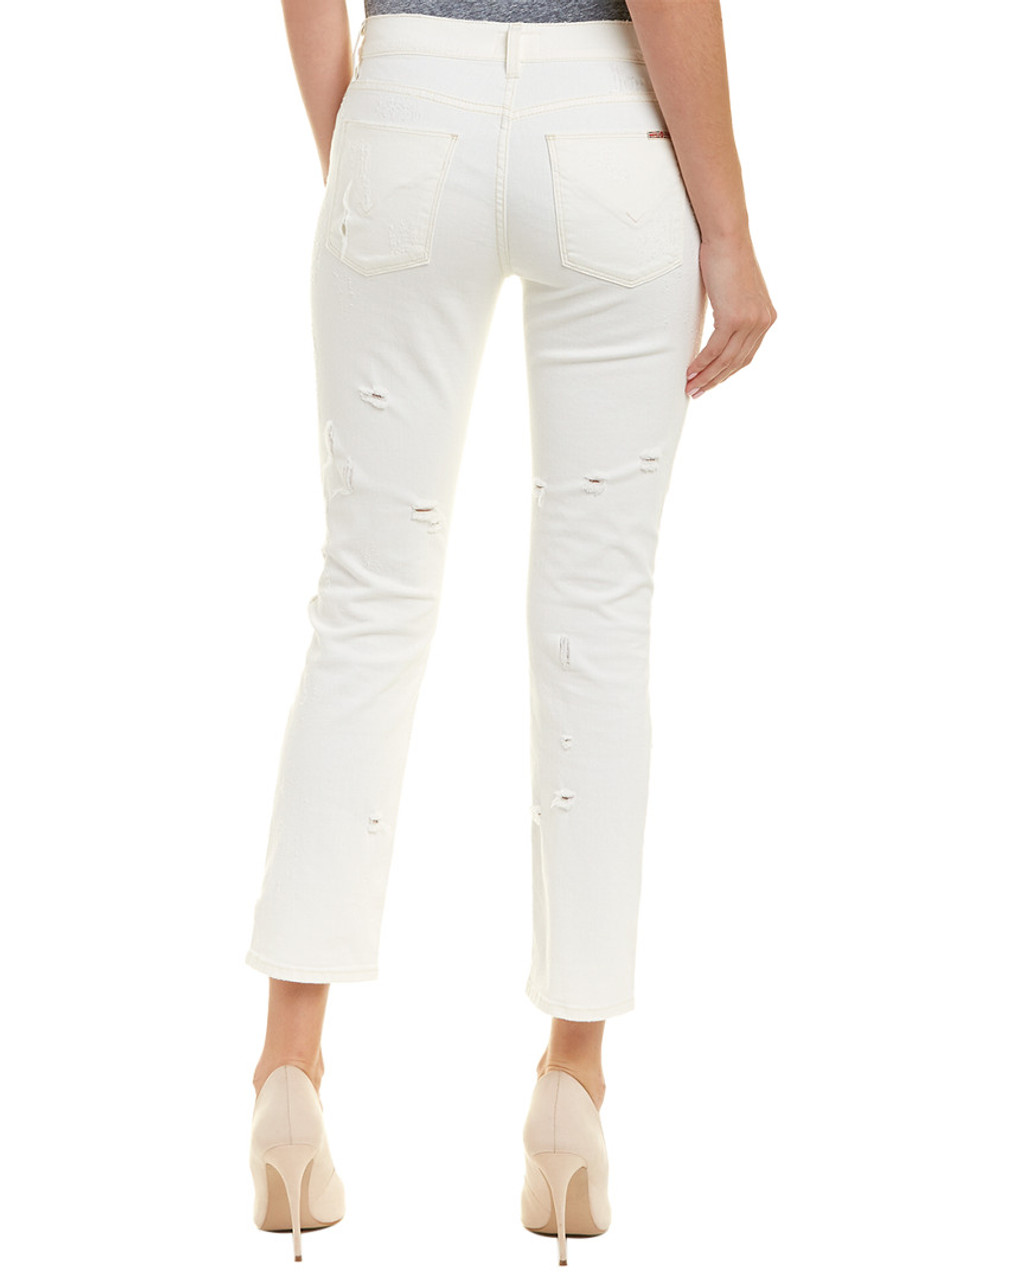 ad841f1d6d5 HUDSON Jeans Zooey Natural Disaster Mid-Rise Straight Crop~1411748381 ...